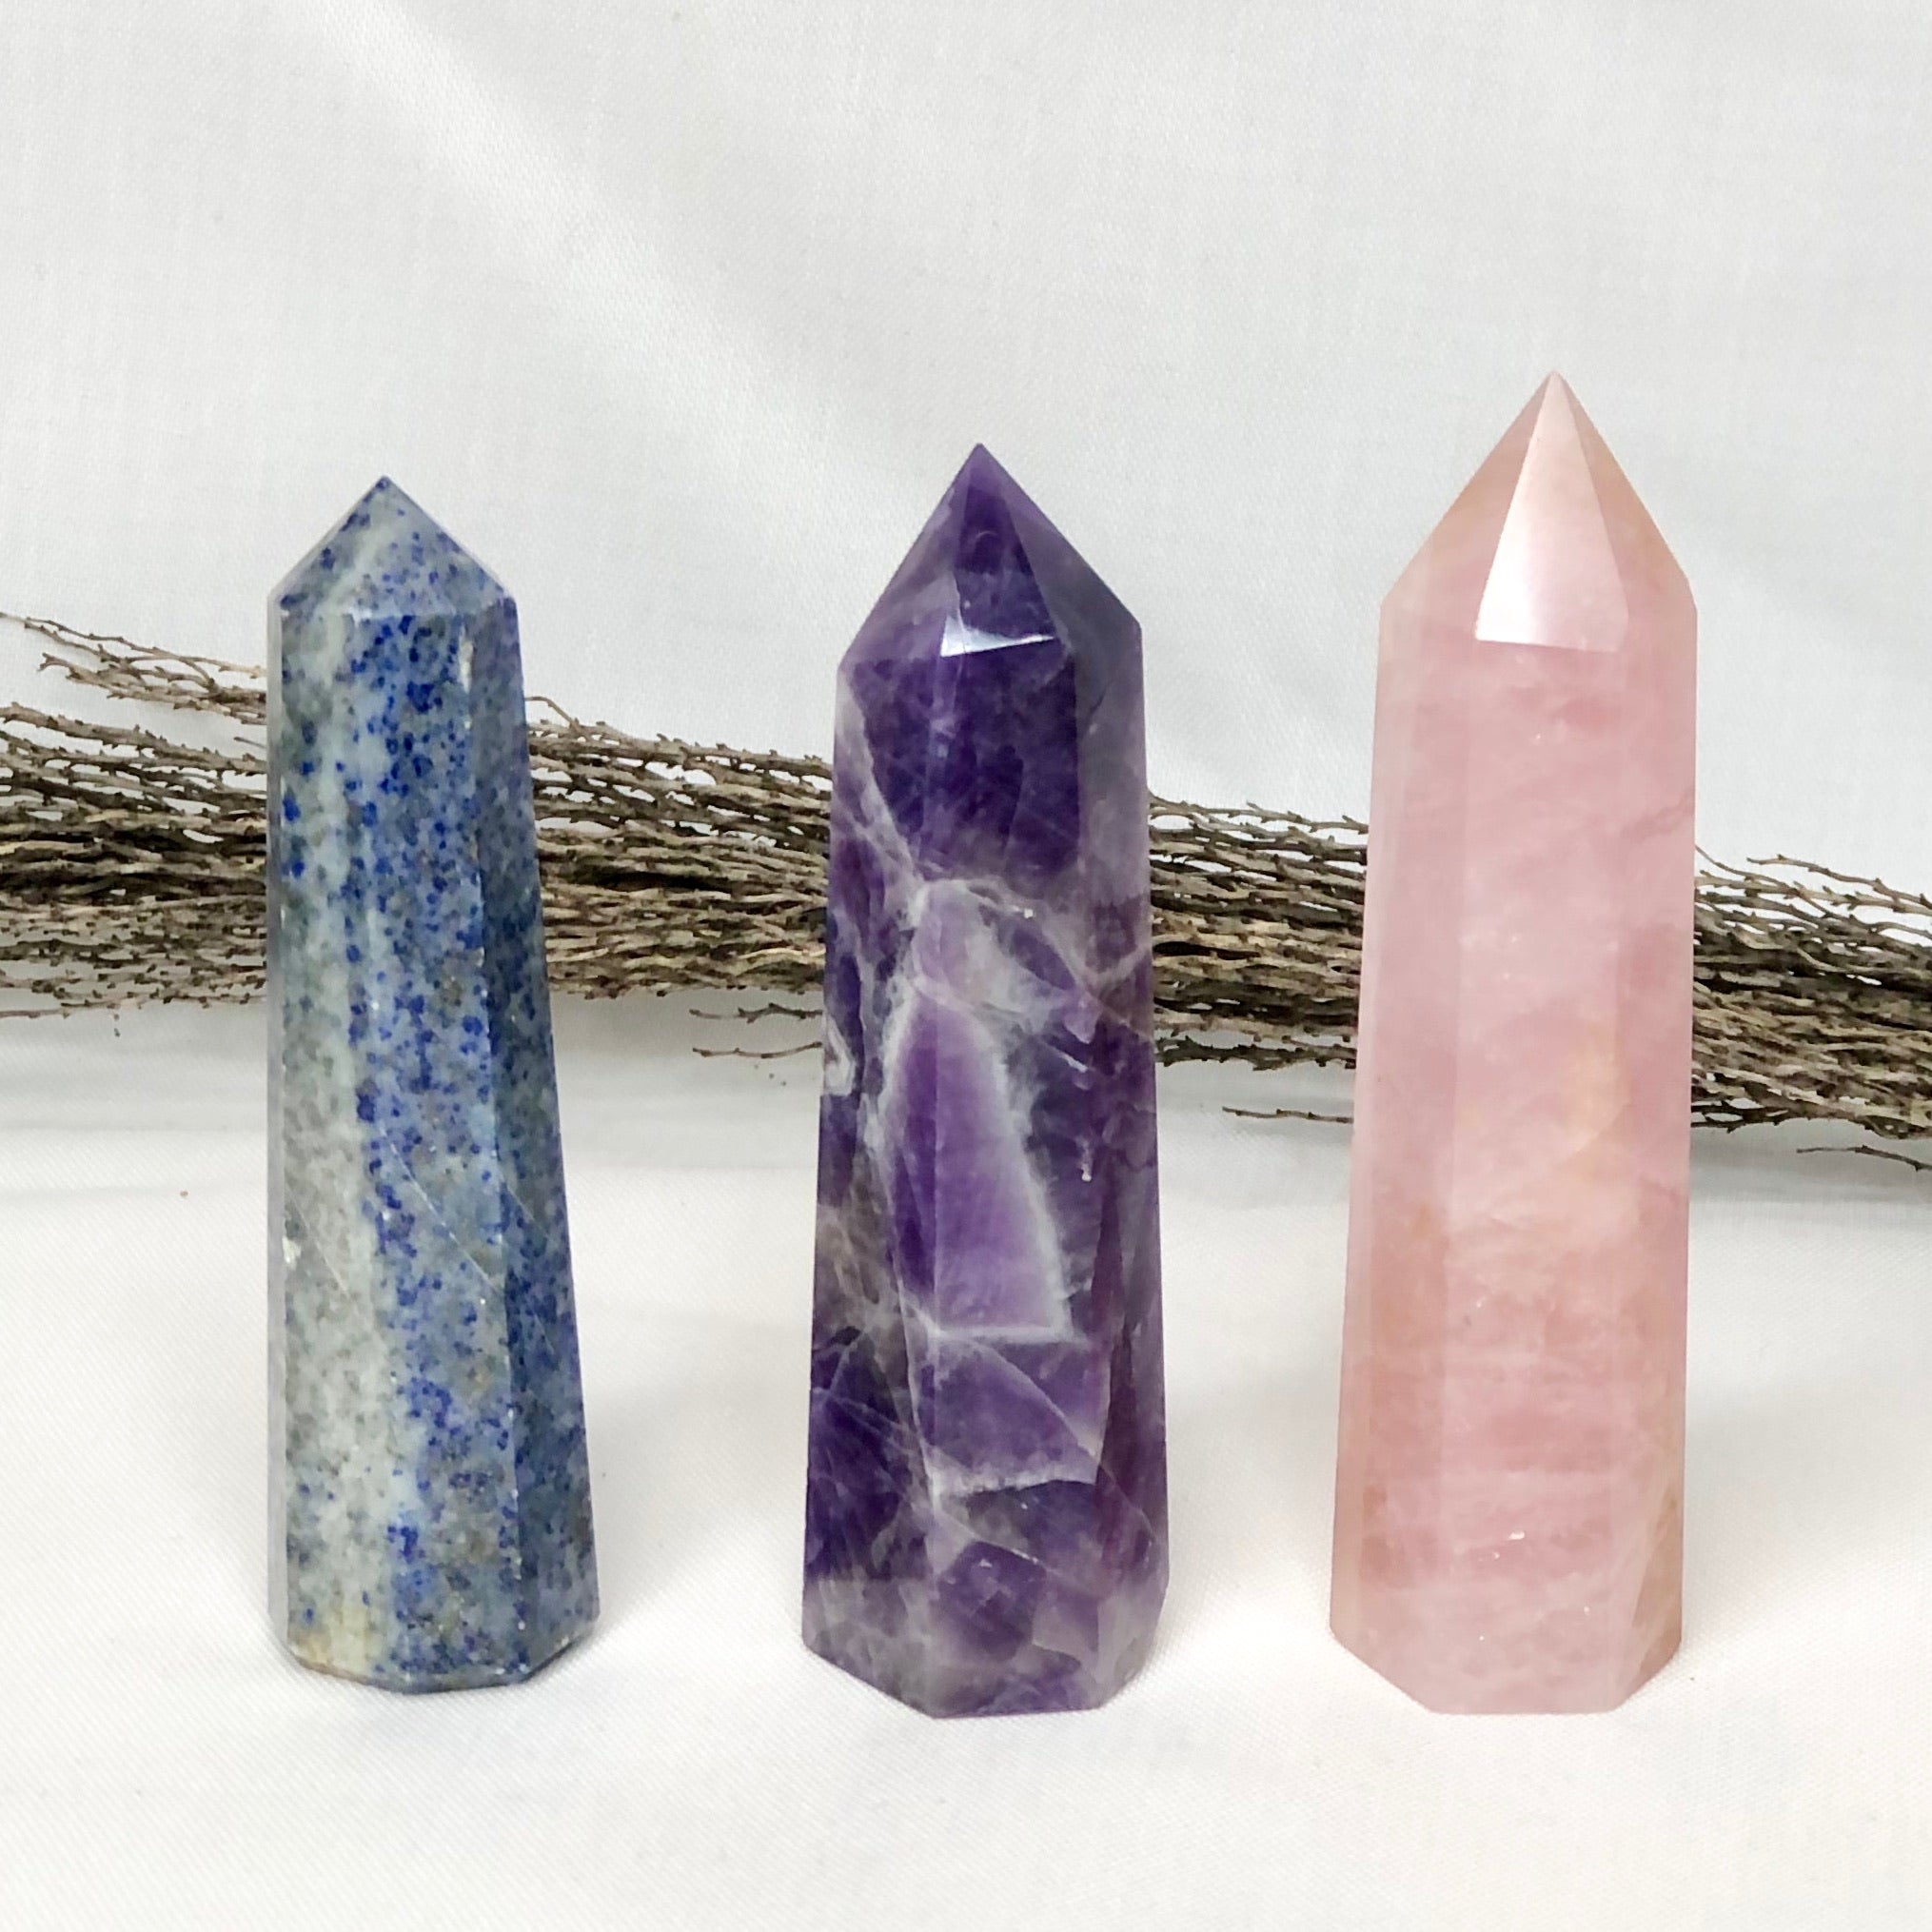 Gift, decor and crystal shop Australia: Trio of crystal towers - Rose quartz, Amethyst + Sodalite points bundle